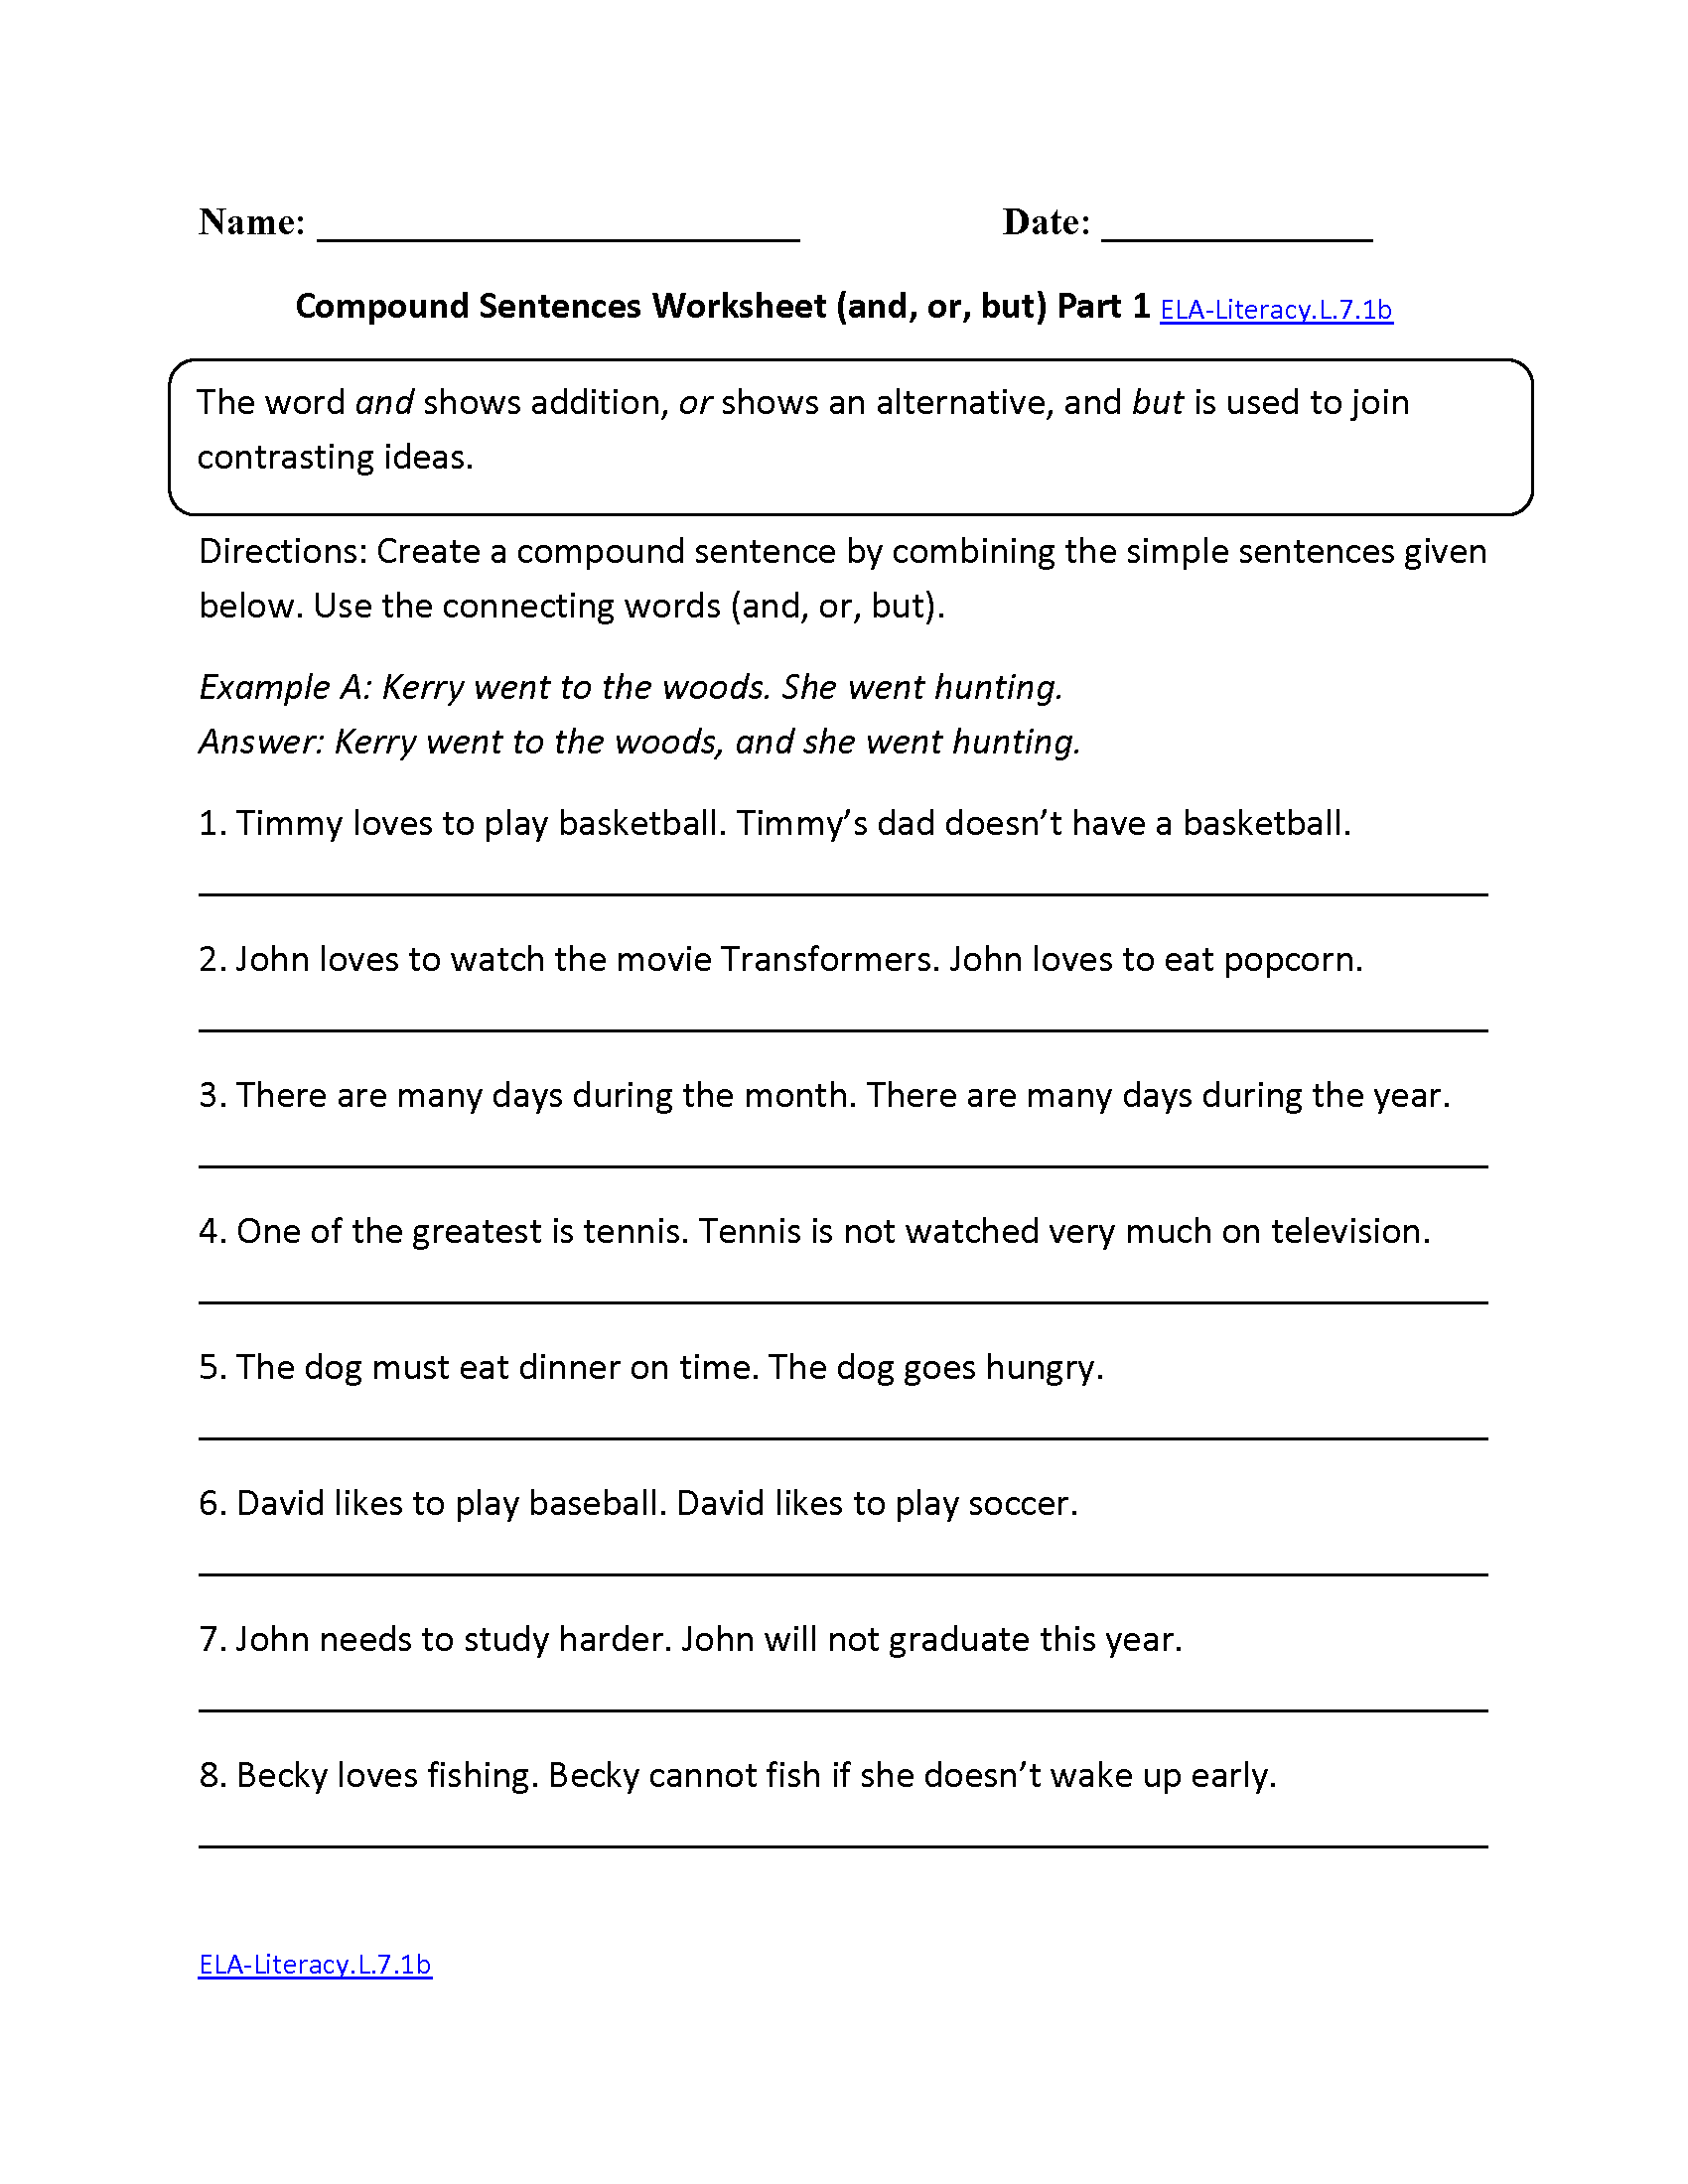 Compound Sentences Worksheet Ela Literacy L 7 1b Language Worksheet